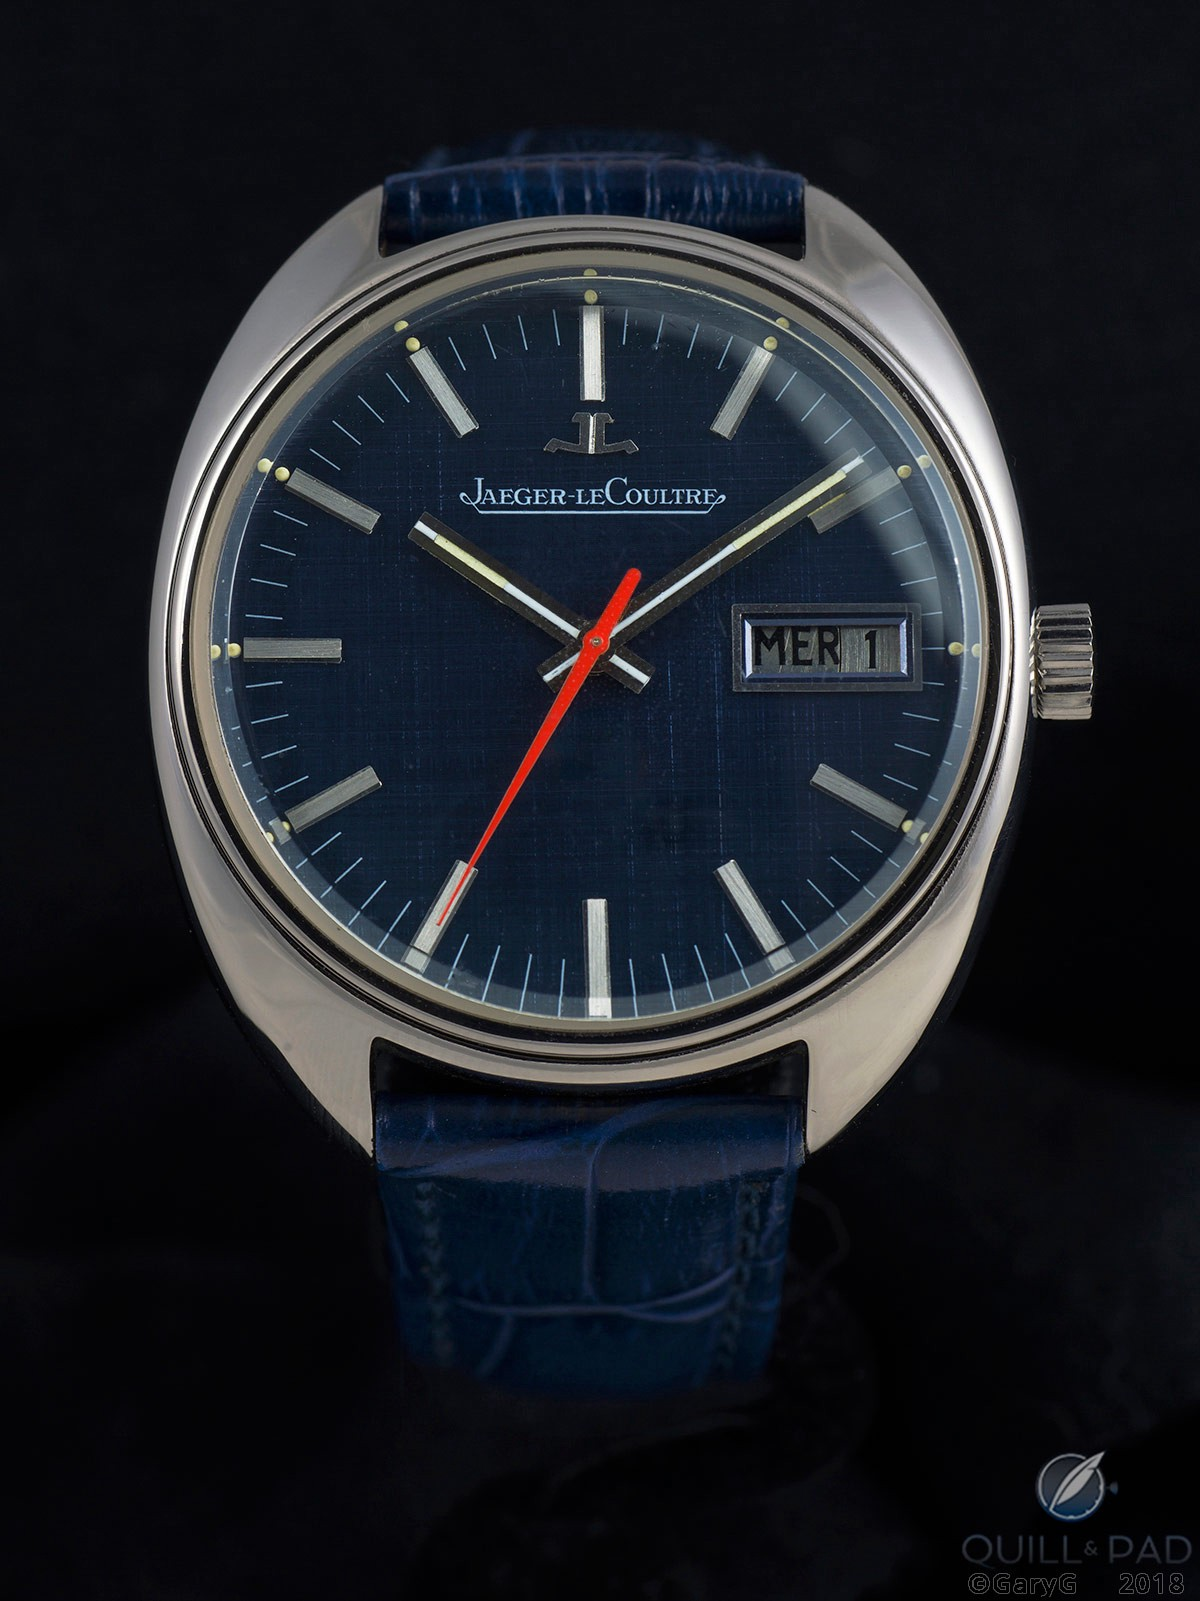 Am I blue? Jaeger-LeCoultre prototype watch showing its blue persona